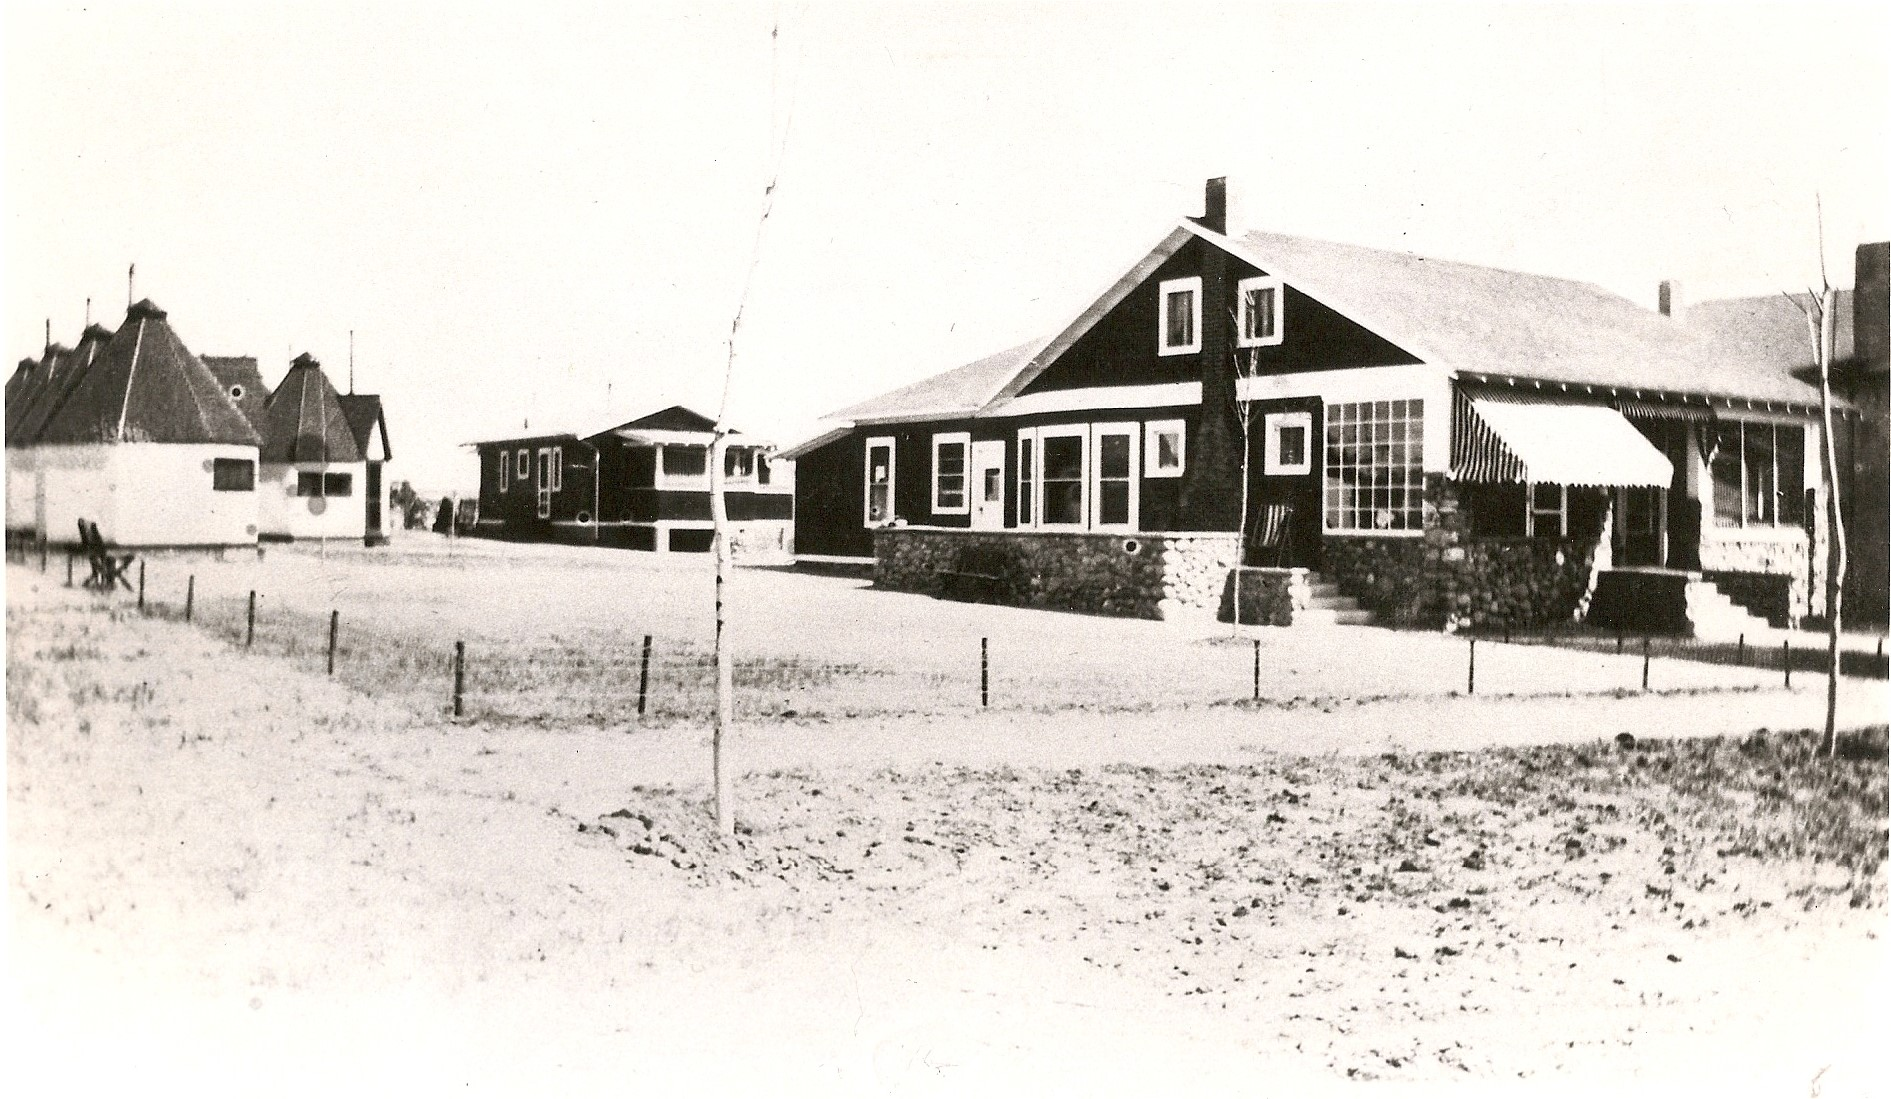 Nob Hill Lodge was located at 319 North Logan Street. ca. 1912-1925. Photo from the CSPM Collection.